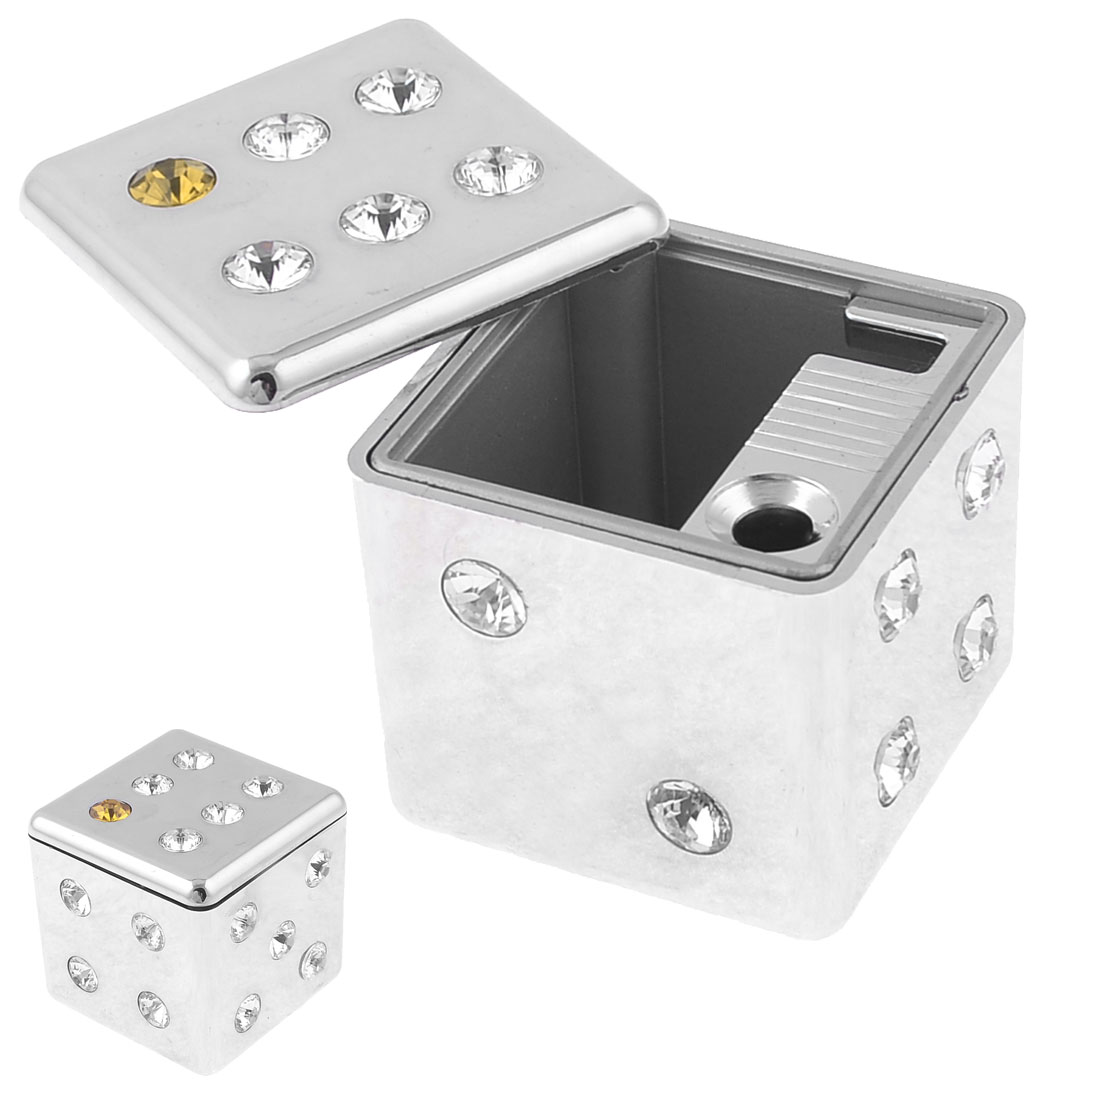 Household Metal Square Garbage Smoking Cigarette Holder Container Ashtray Silver Tone